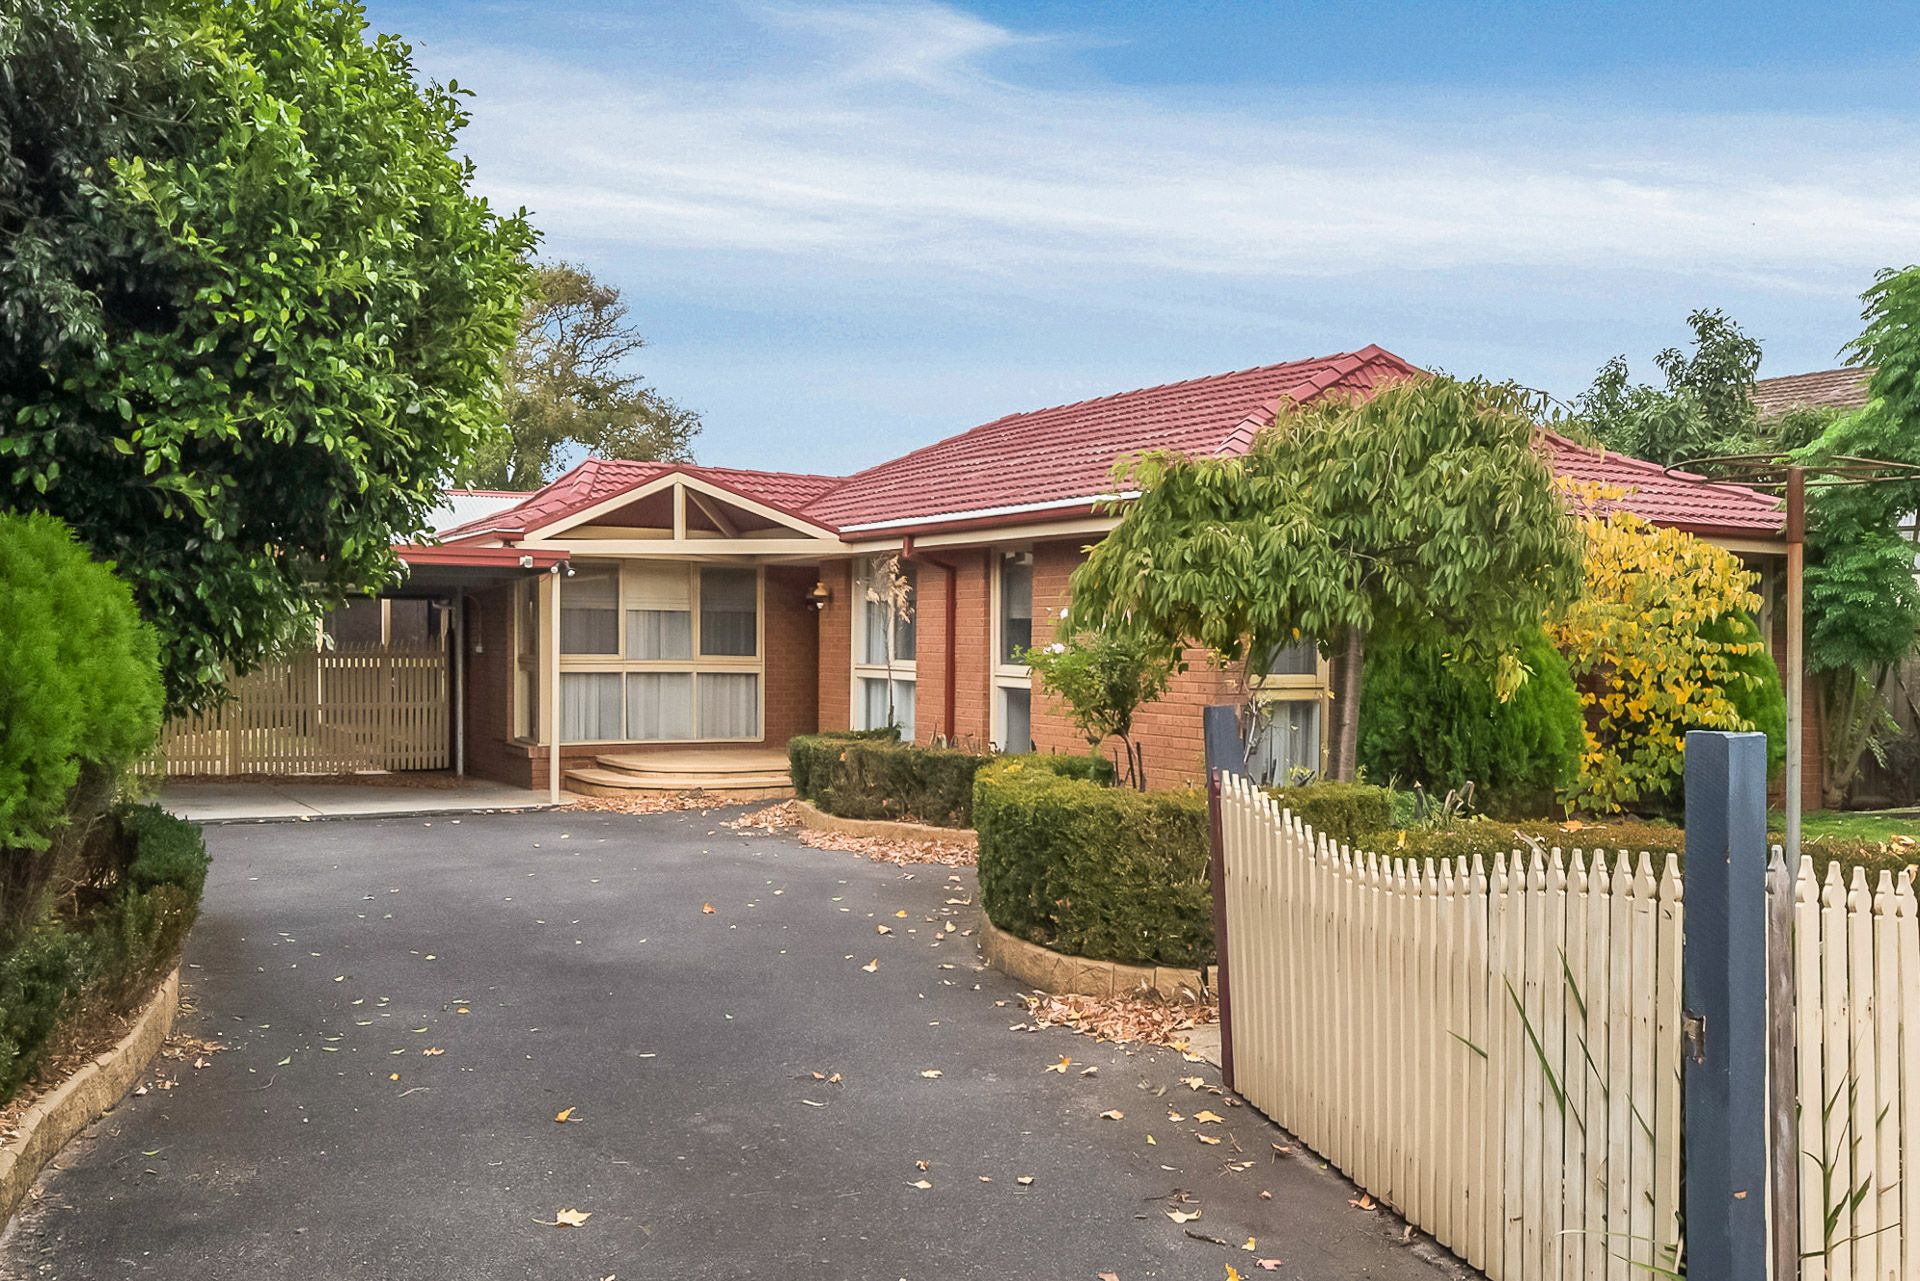 31 Moorhen Crescent, CARRUM DOWNS, VIC, 3201 - Image